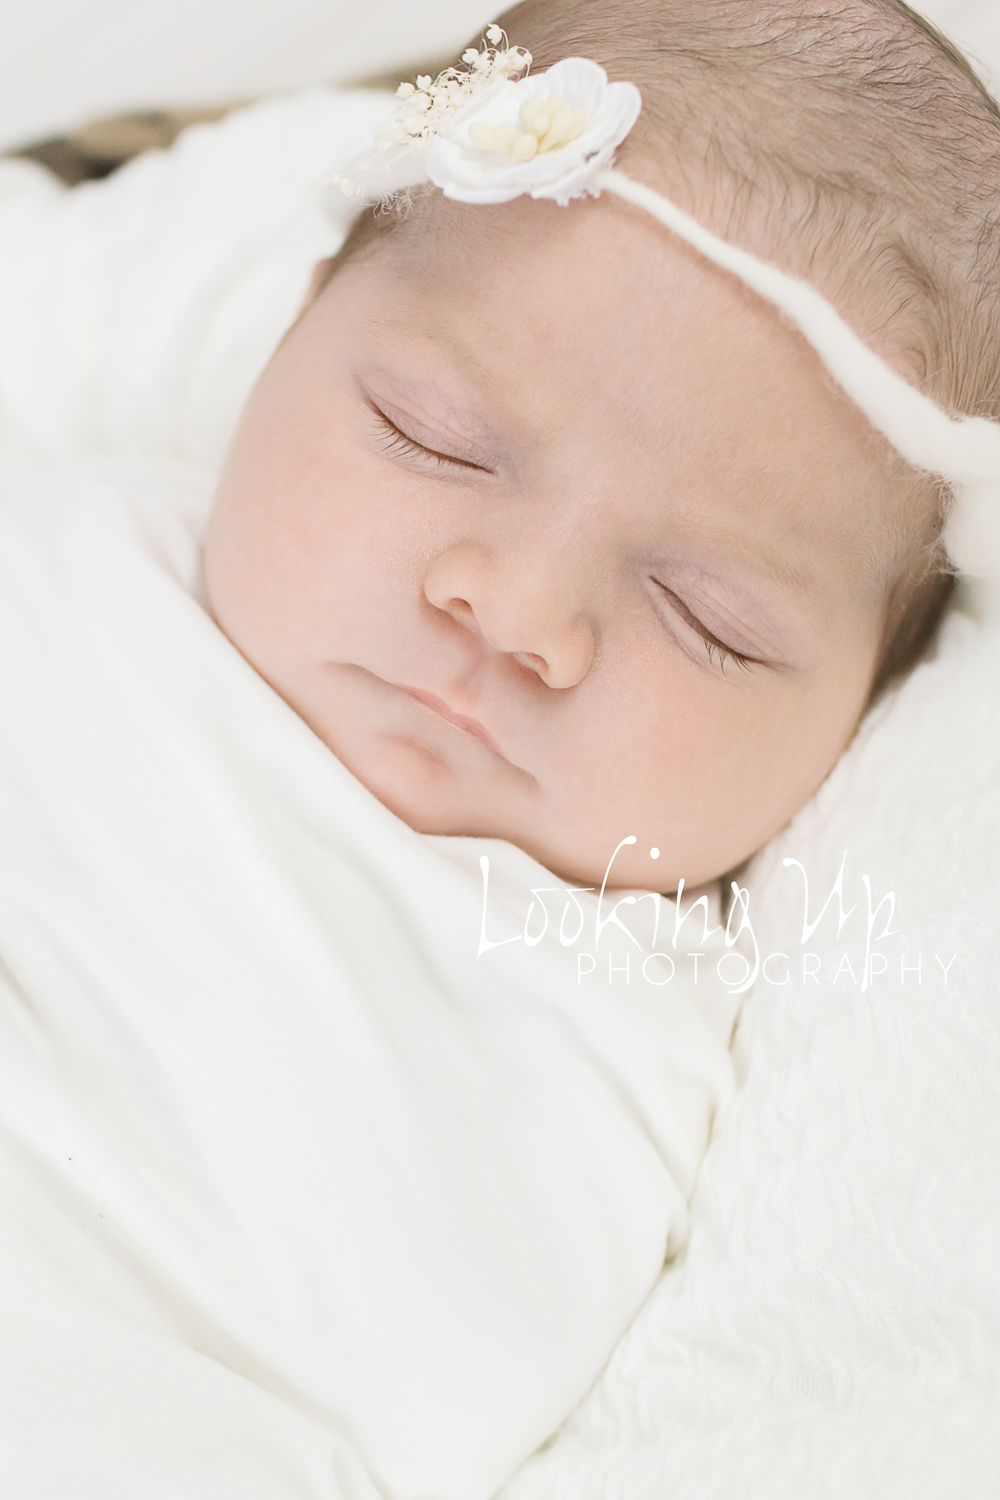 adorable baby girl sleeping in all white